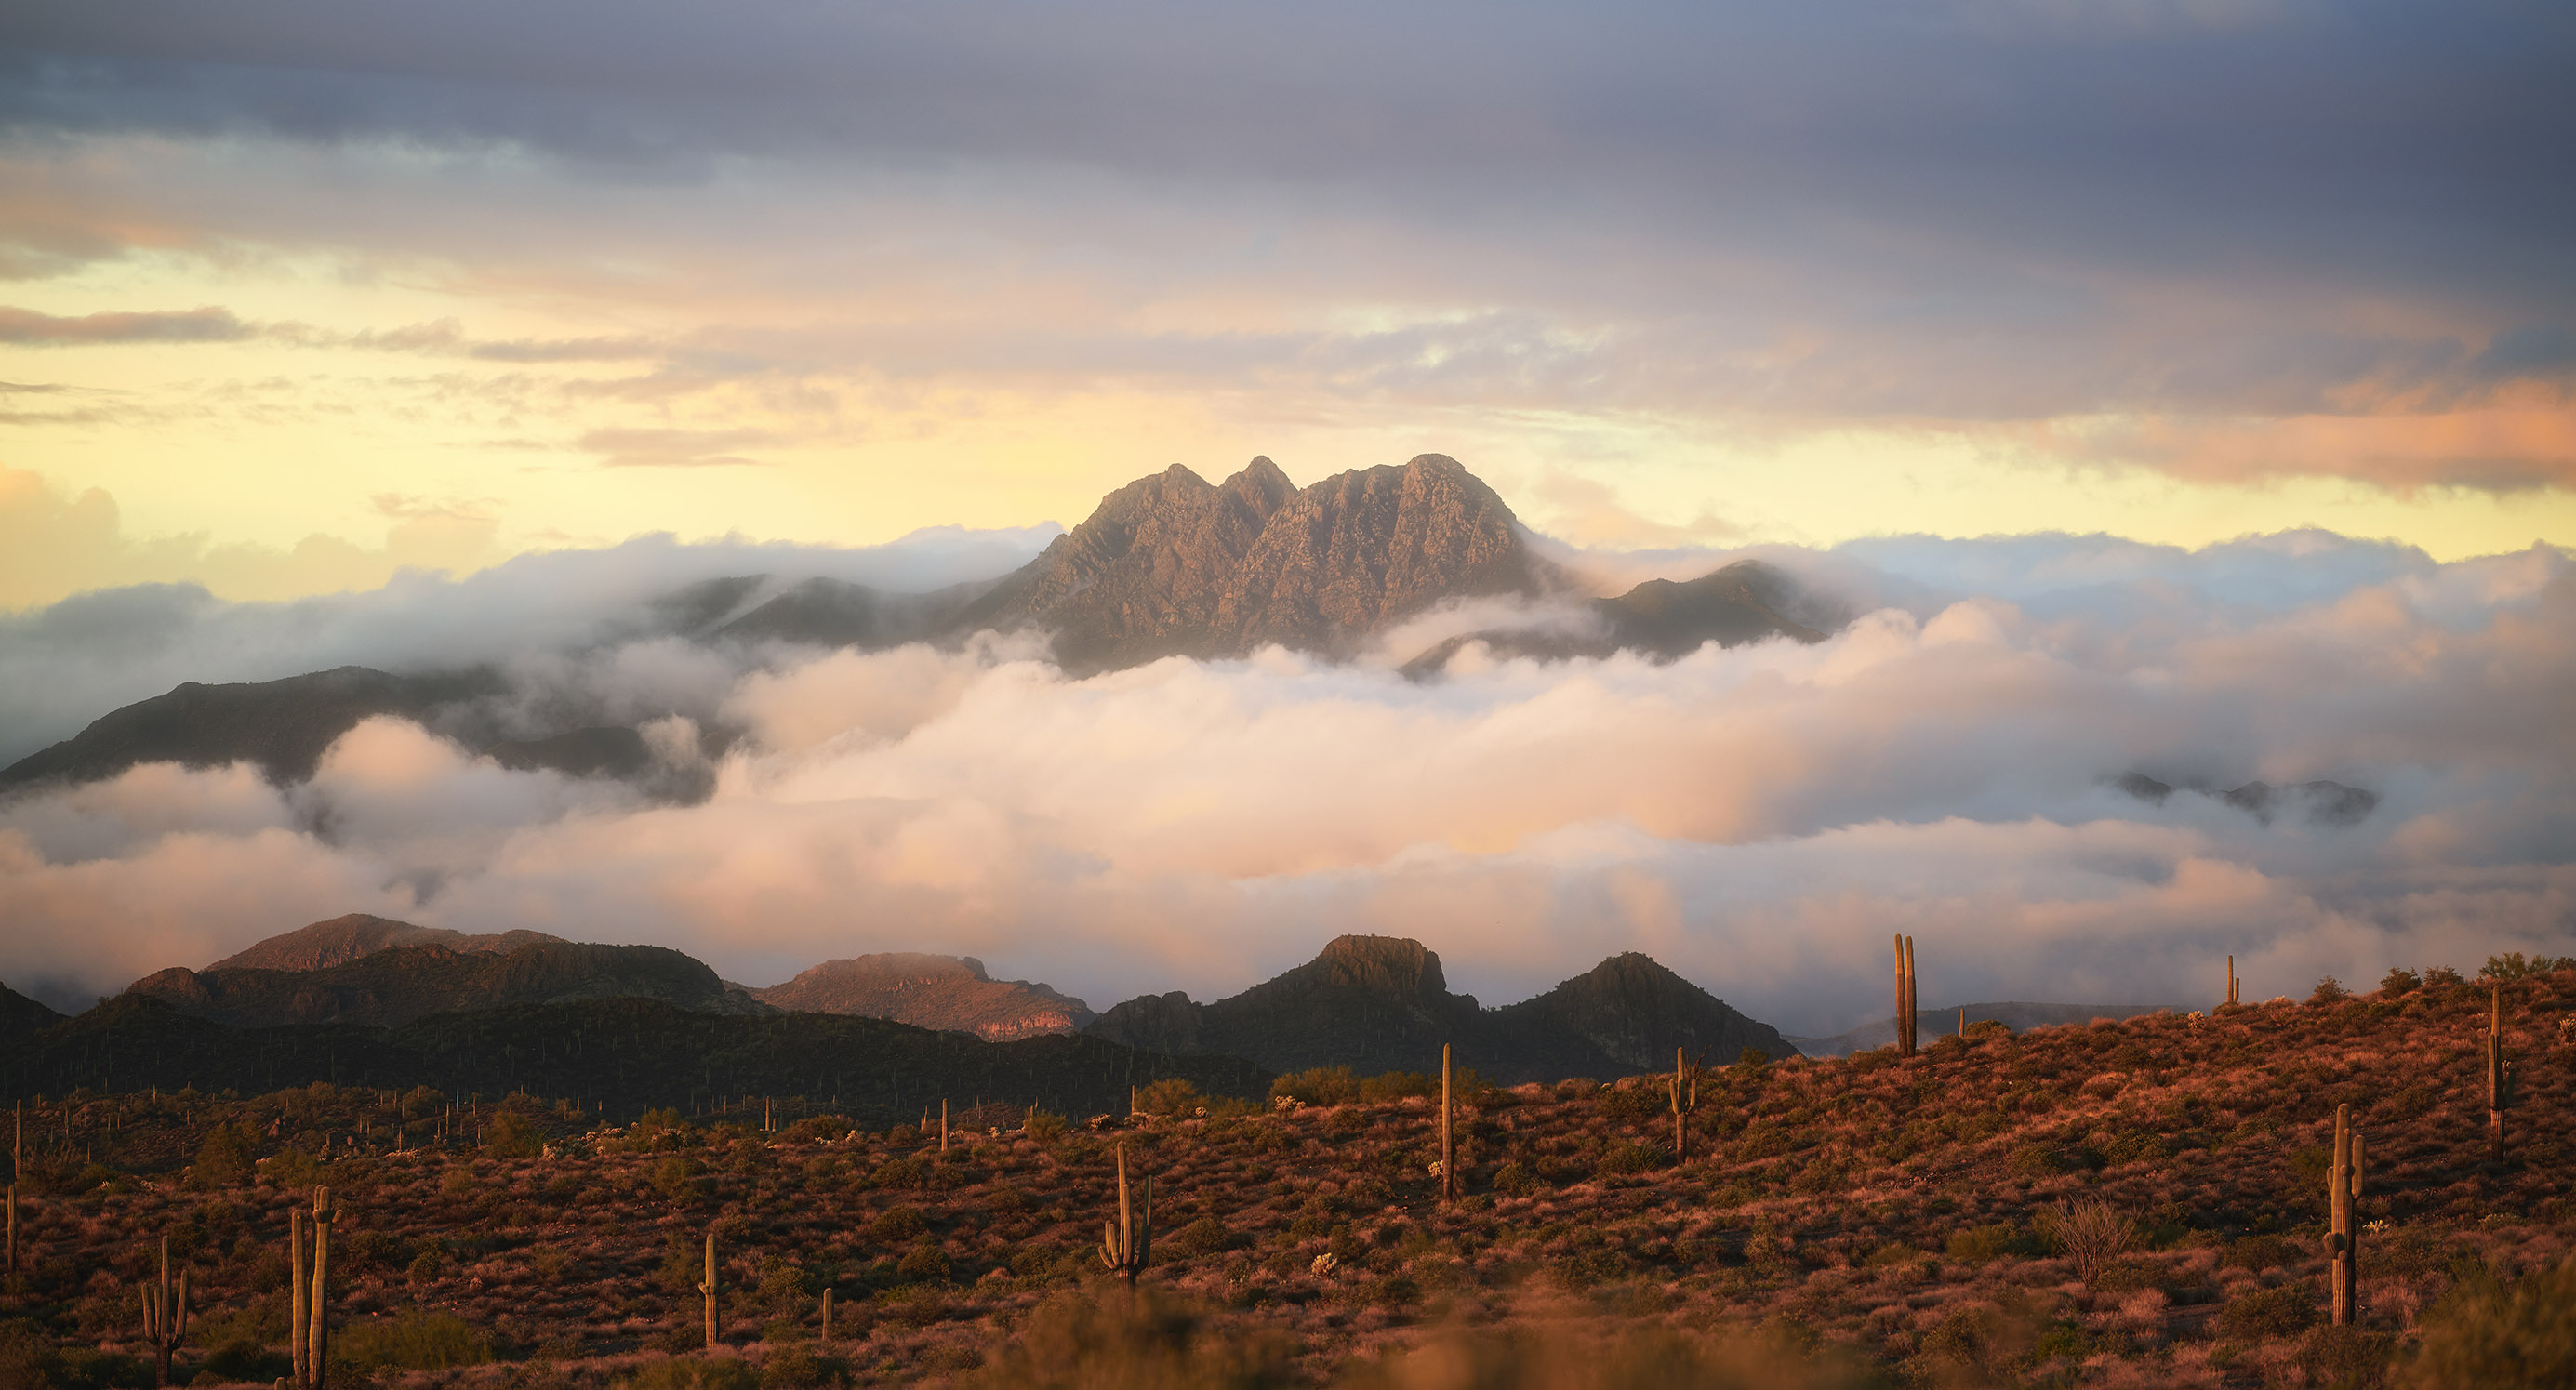 arizona landscape photography, four peaks arizona, photos of four peaks mountain